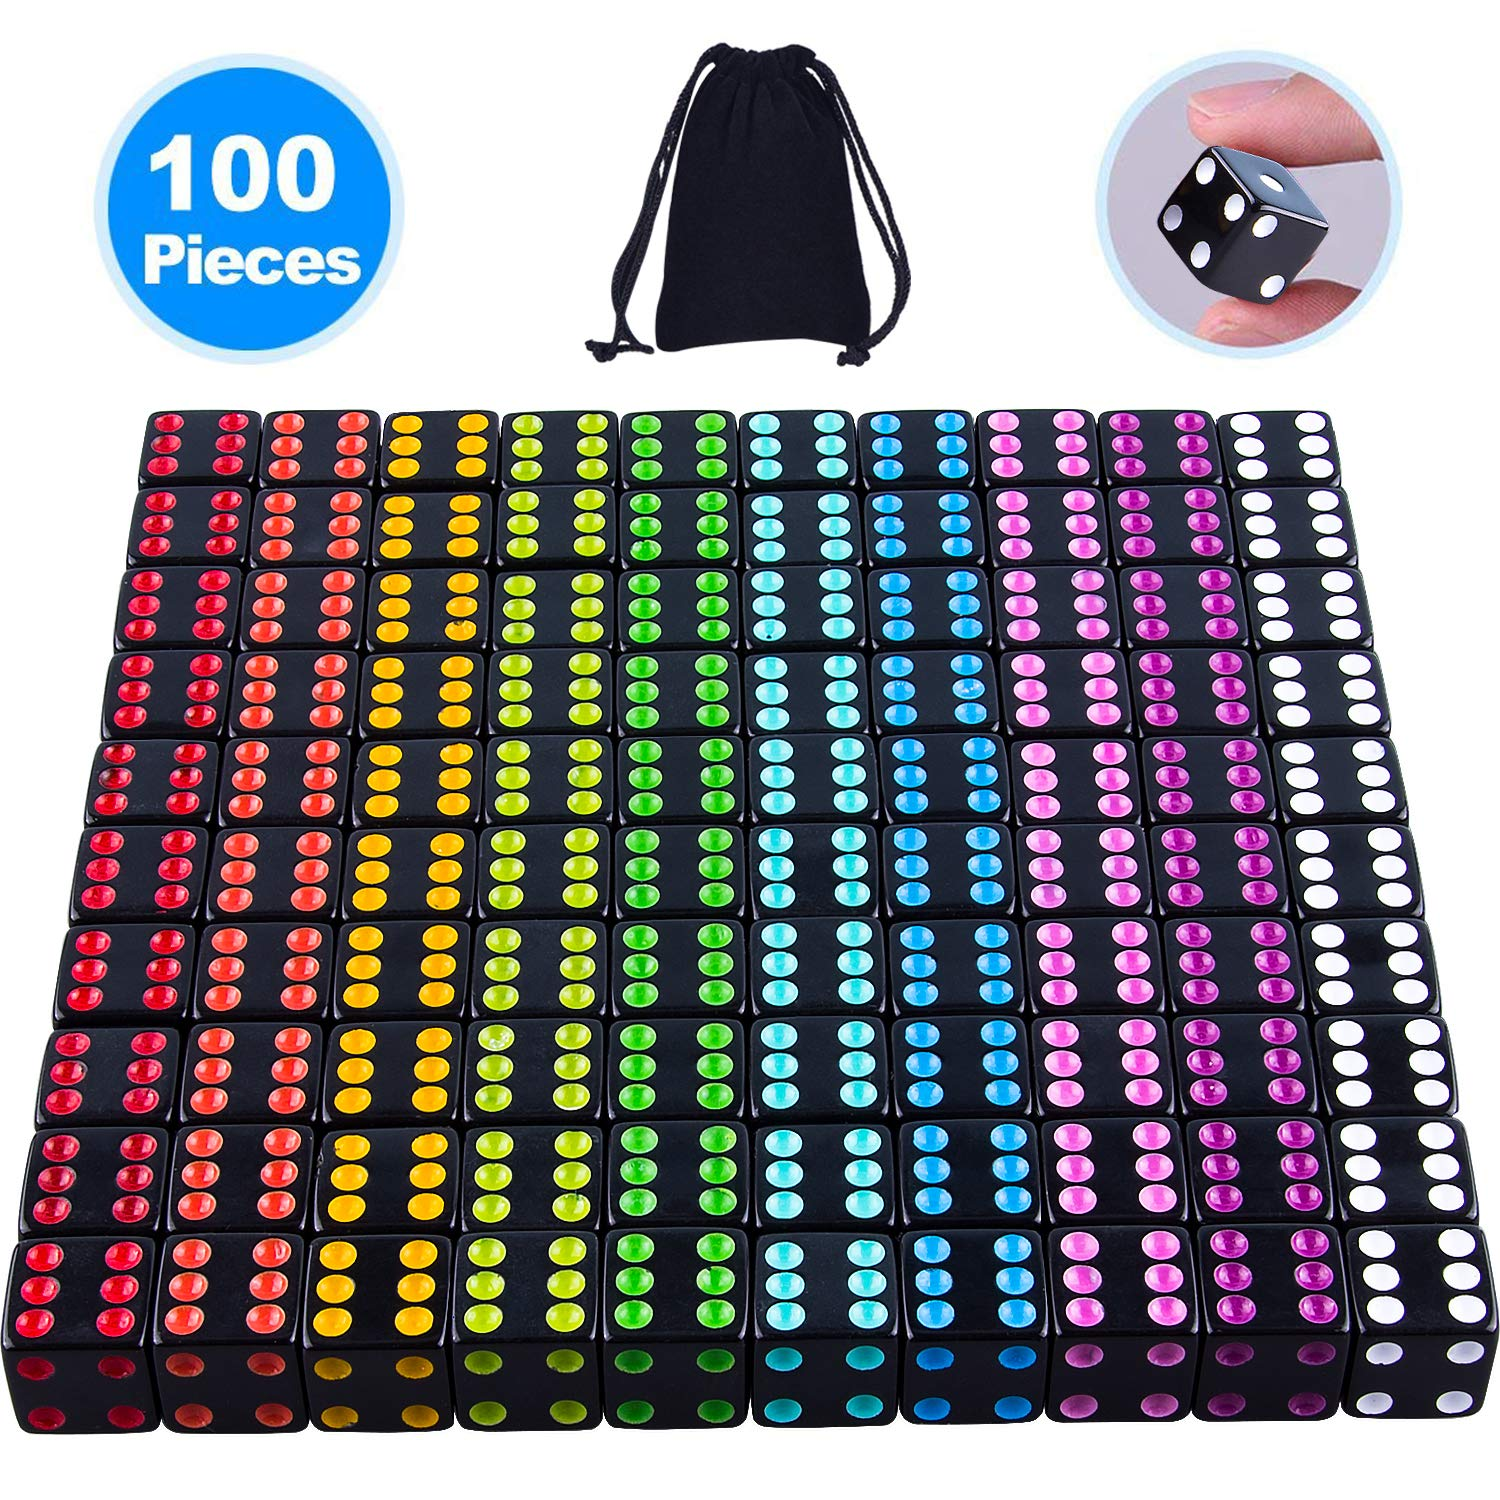 SIQUK 100 Pcs Black Dice with Colorful Pips 6 Sided Square Corner Dices Come with a Free Storage Bag by AUSTOR